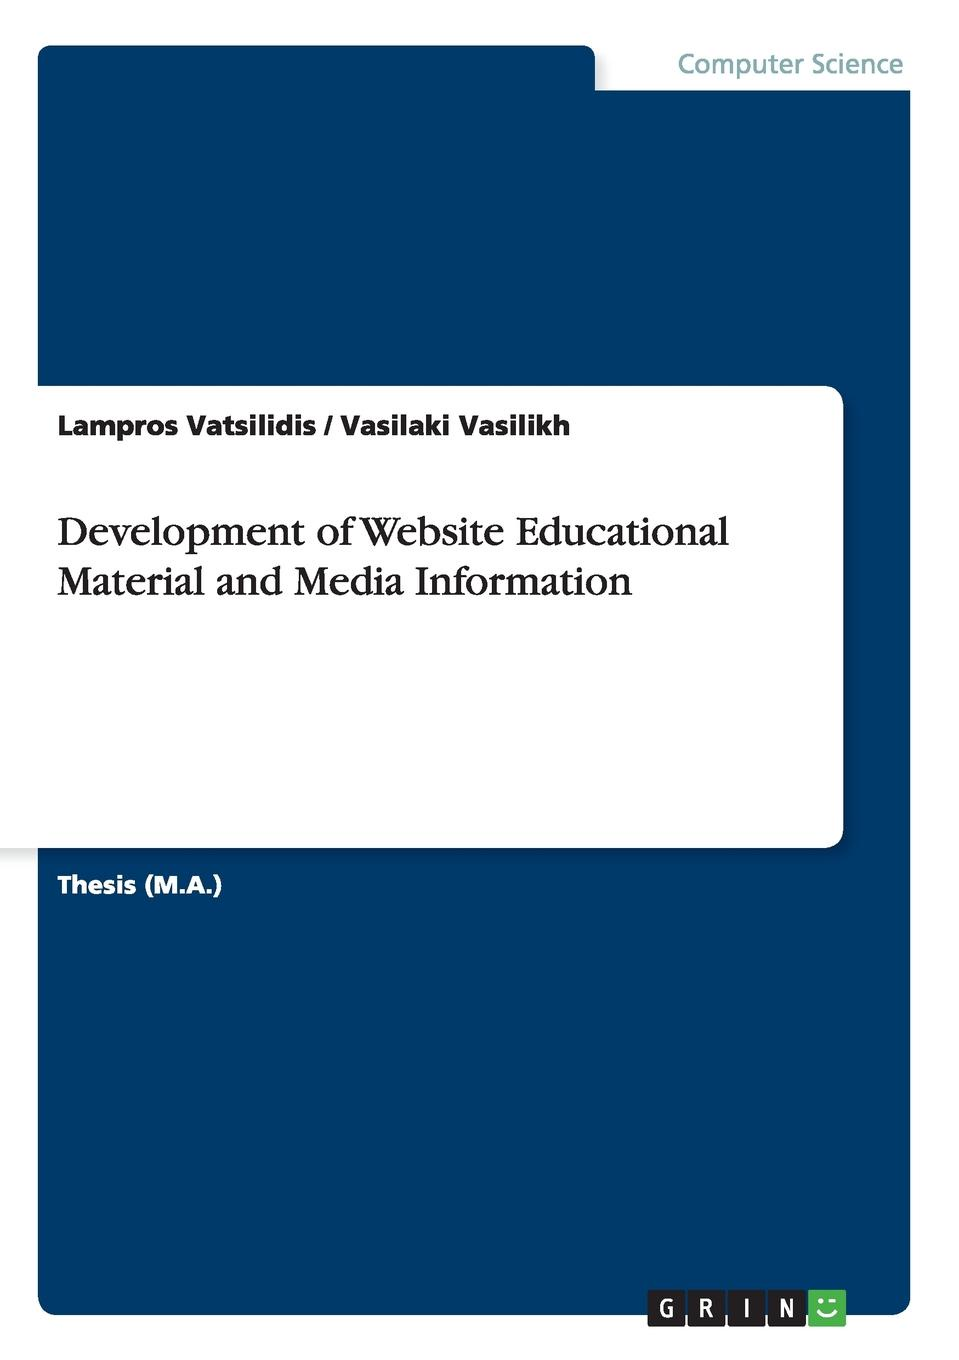 Lampros Vatsilidis, Vasilaki Vasilikh Development of Website Educational Material and Media Information